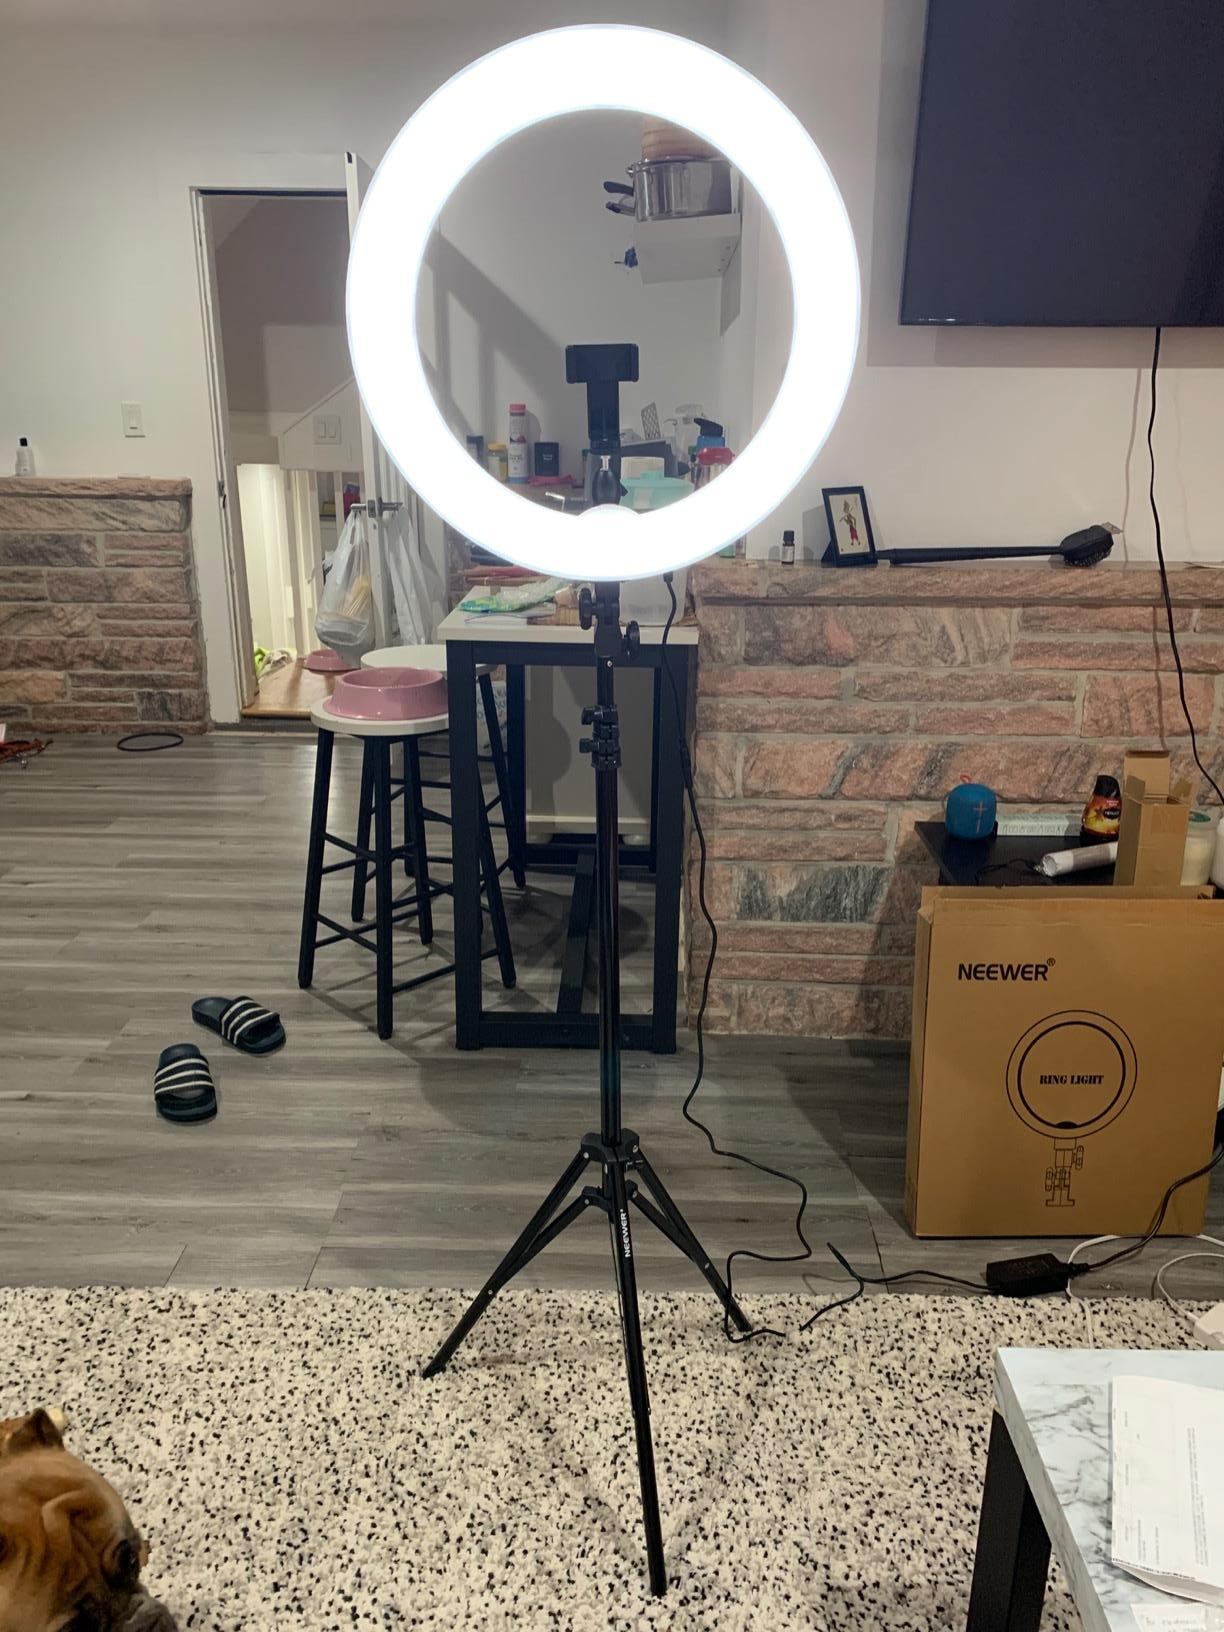 Reviewer's selfie ring light in a room